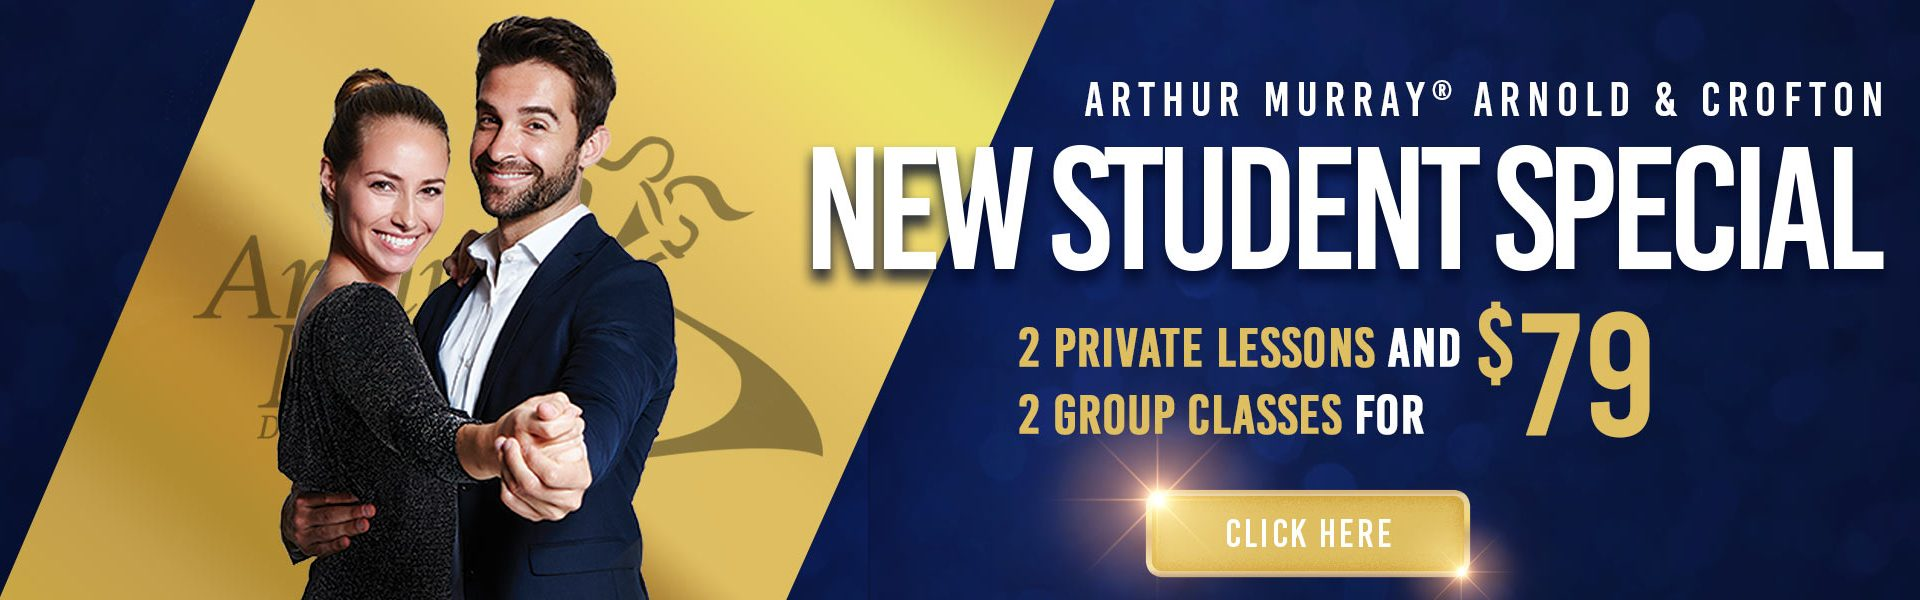 Arthur Murray Crofton New Student Special